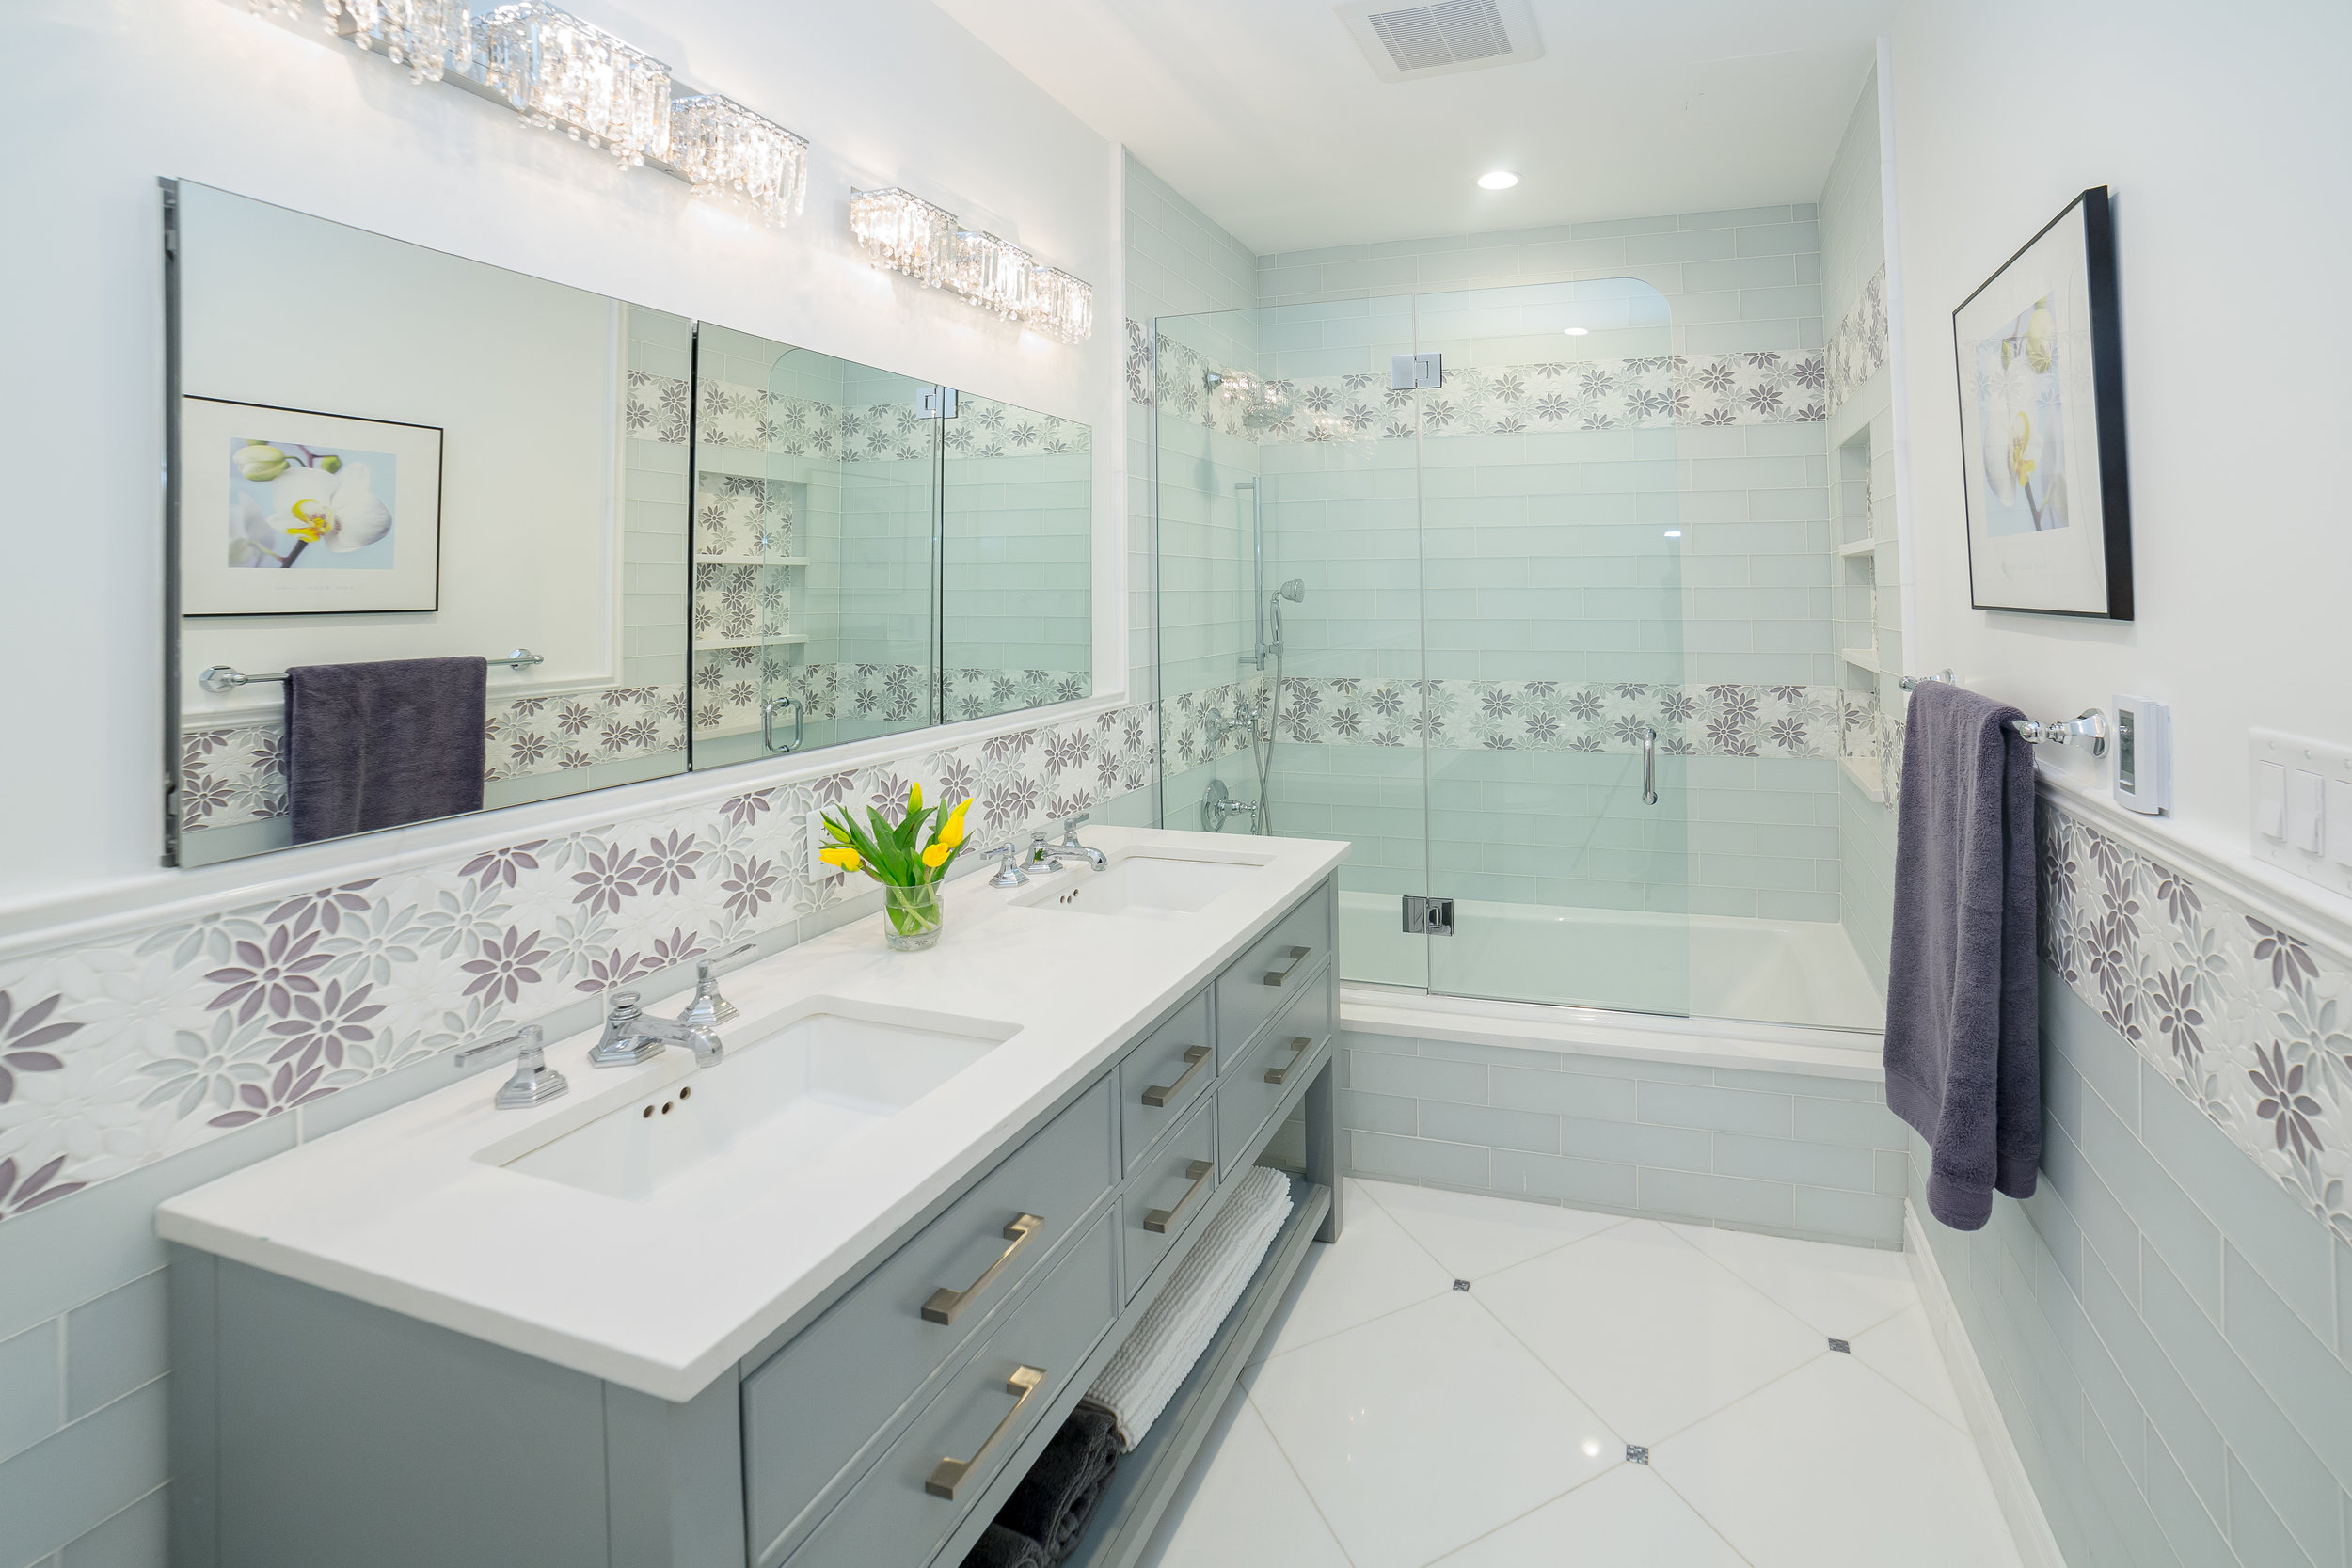 Designed by Marie Burgos Design - Photo Credit Francis Augustine   Floor Tiles: Thassos Marble - Floor Accent Tile: Seashell Blocking mosaic - Accent Tiles: Gardenia Calliope Thassos and Glass Tile from  Tile Bar